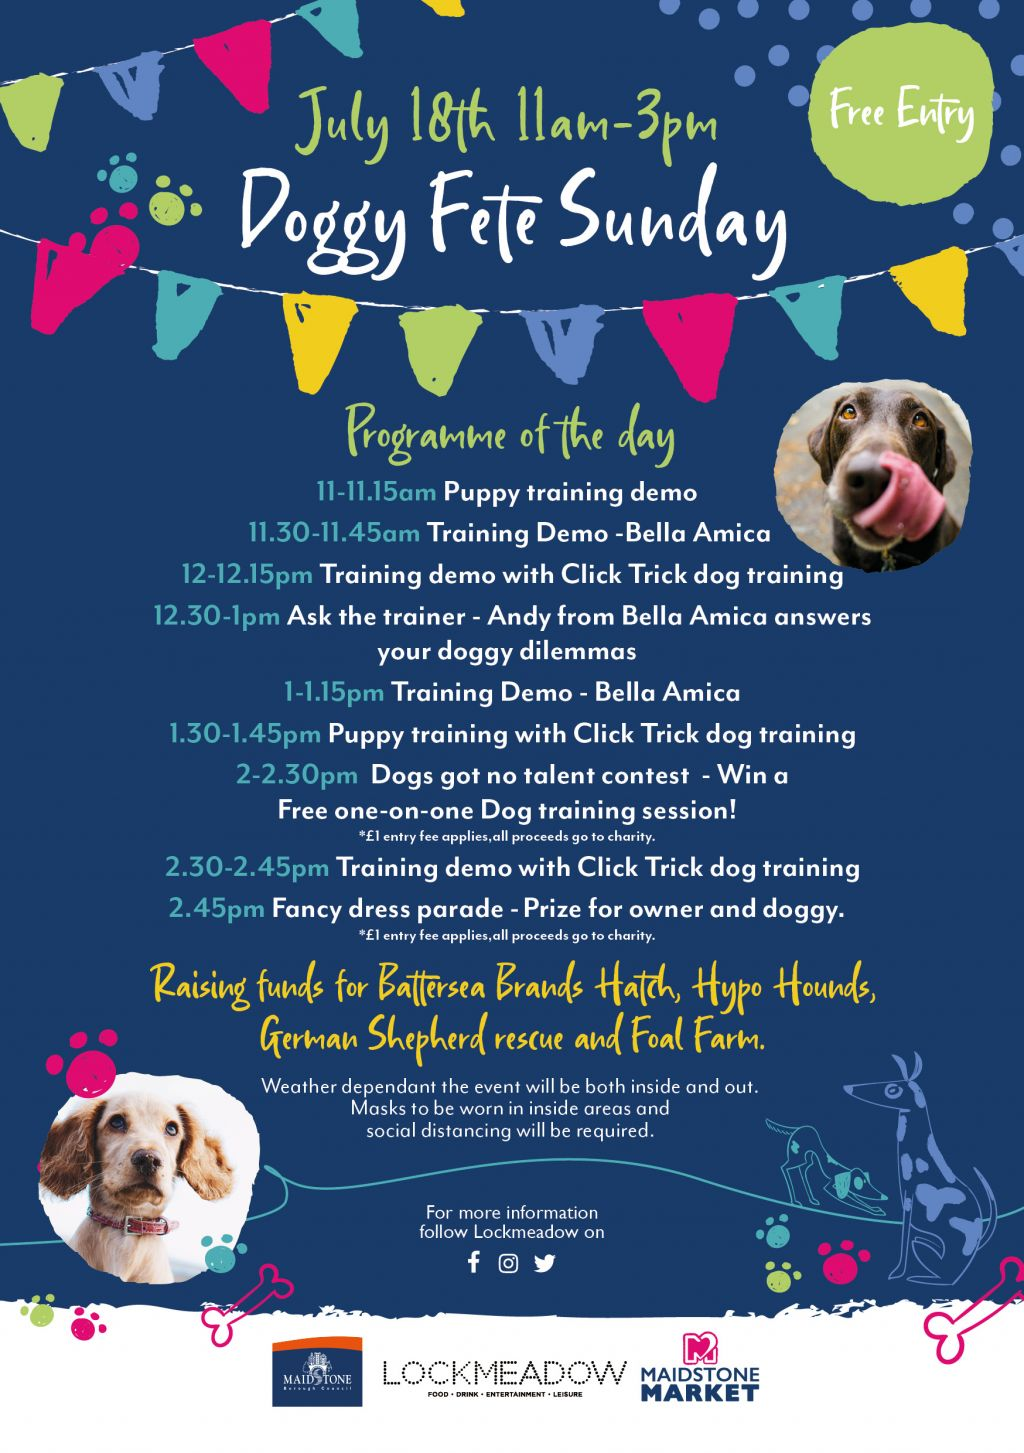 It's a Dog's Life at Lockmeadow first Doggy Funday  image